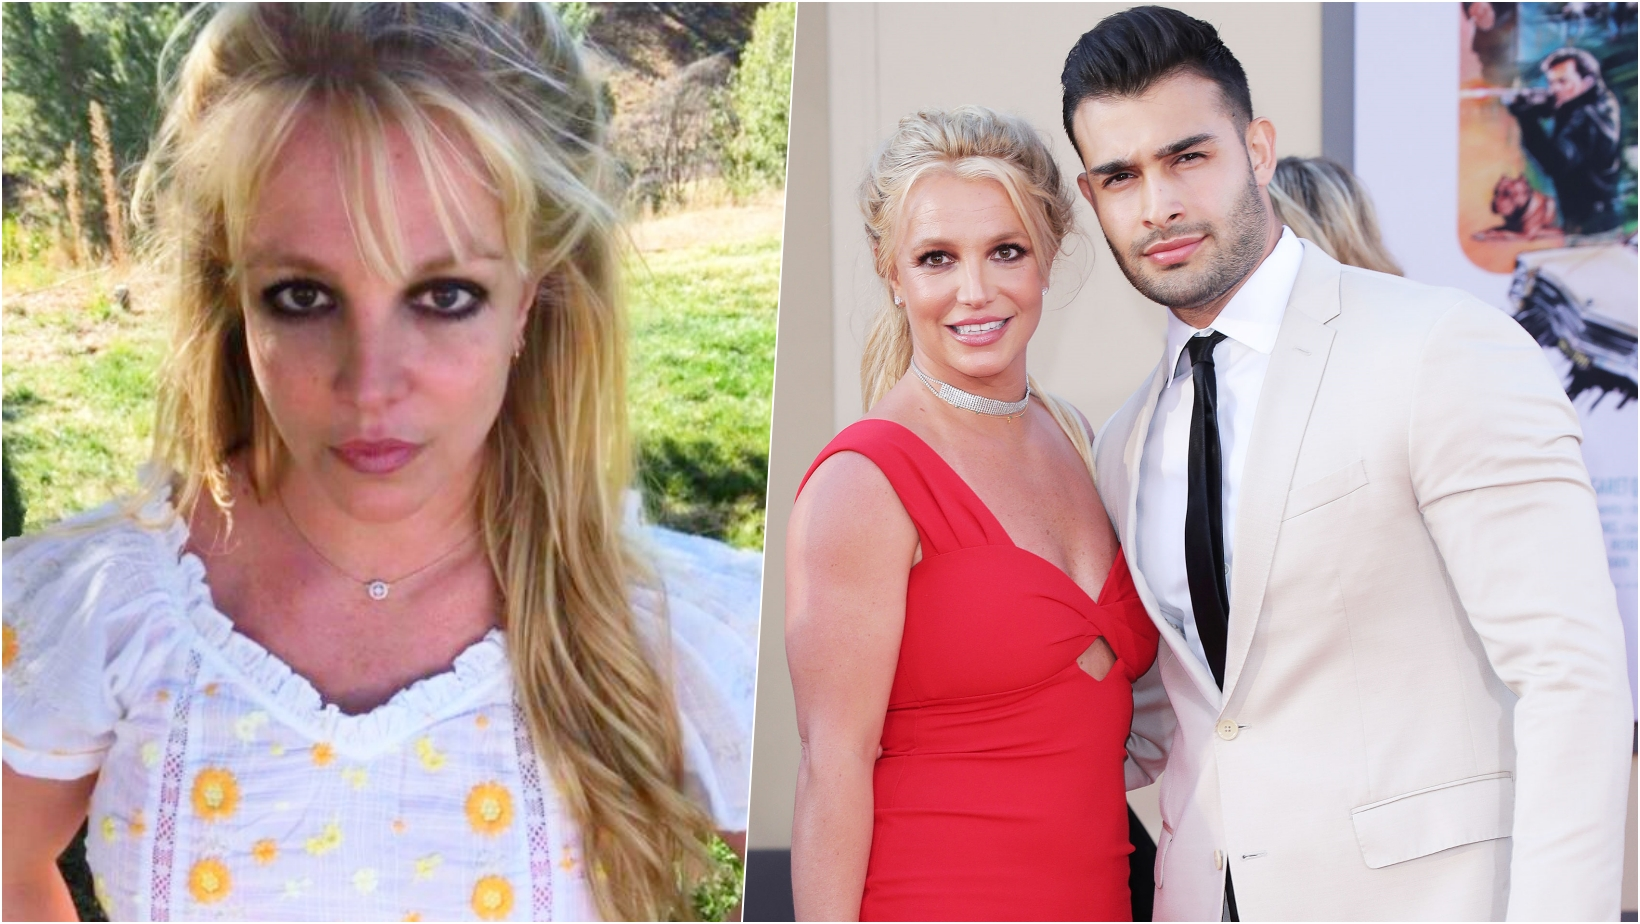 6 facebook cover 29.jpg - Britney Spears Finally Returns To Social Media After A Weekend Getaway Celebrating Her Engagement With Fiancé Sam Asghari